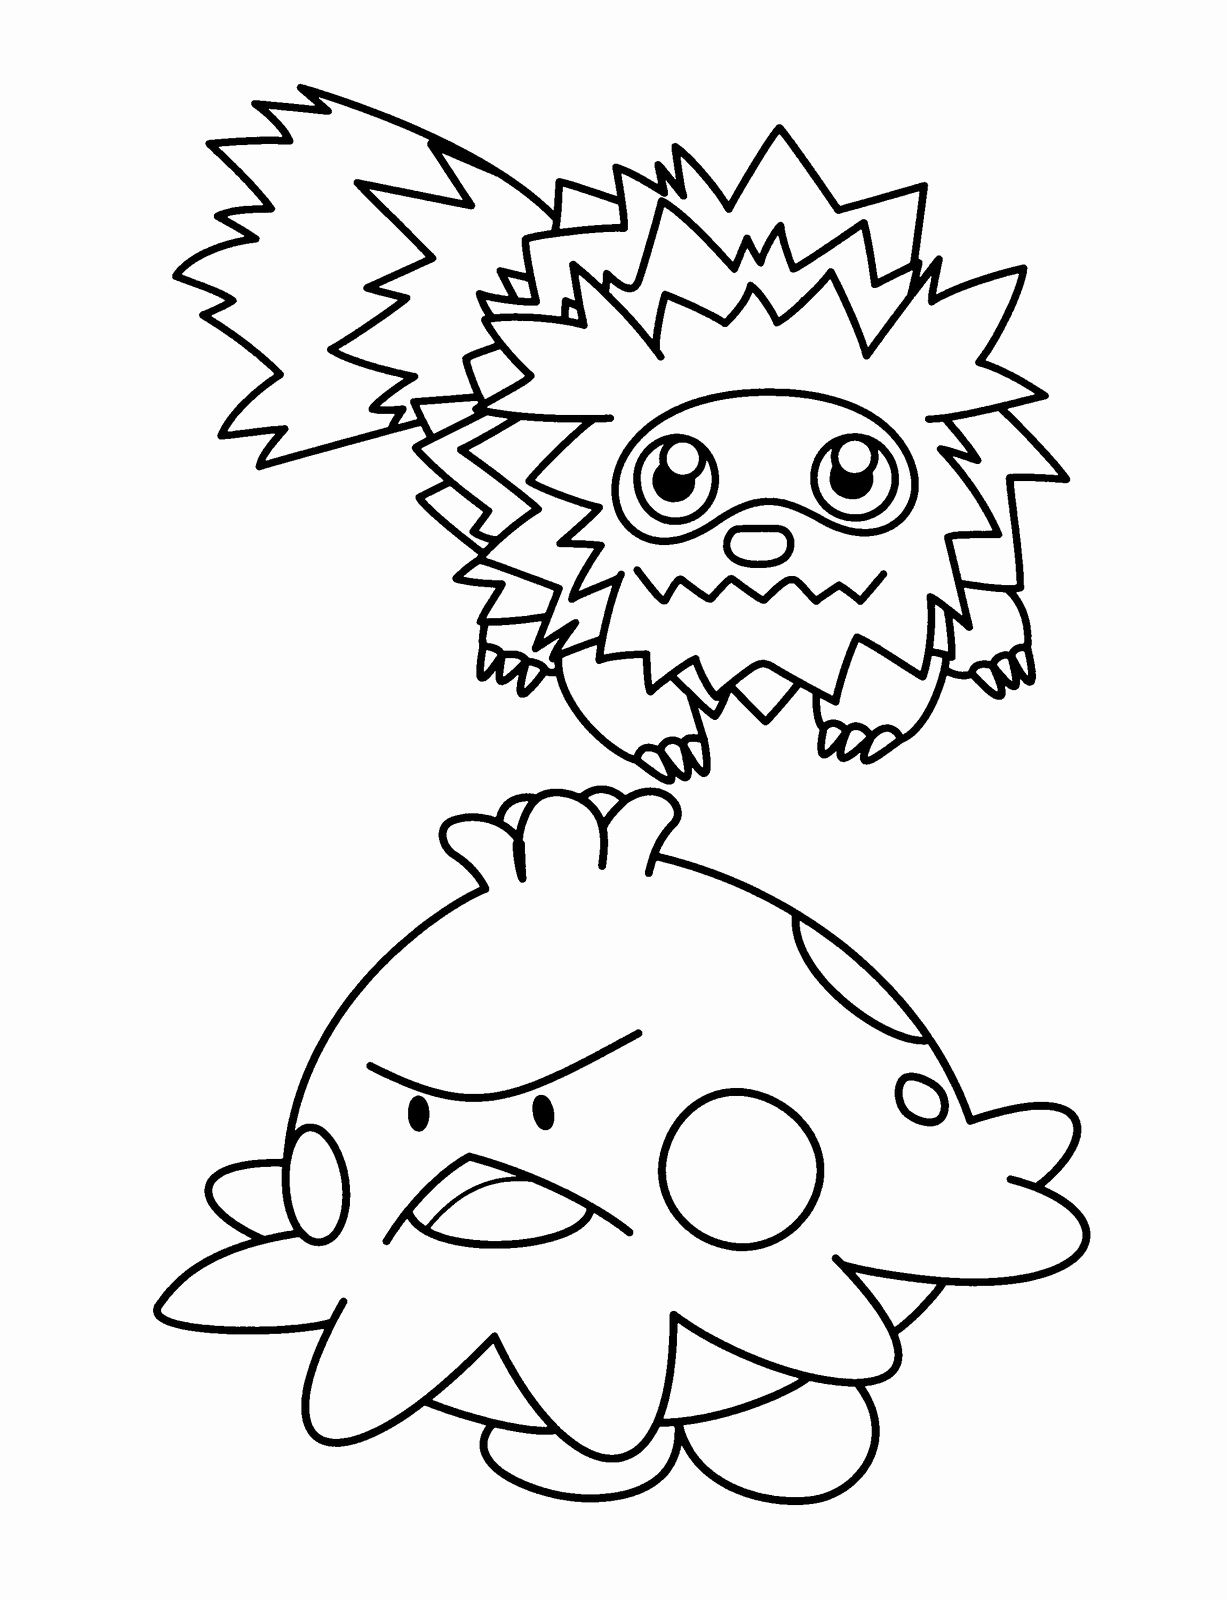 Halloween Pokemon Coloring Pages New Pokemon Coloring Embroidery Pinterest Pokemon Coloring Pokemon Coloring Pages Coloring Pages